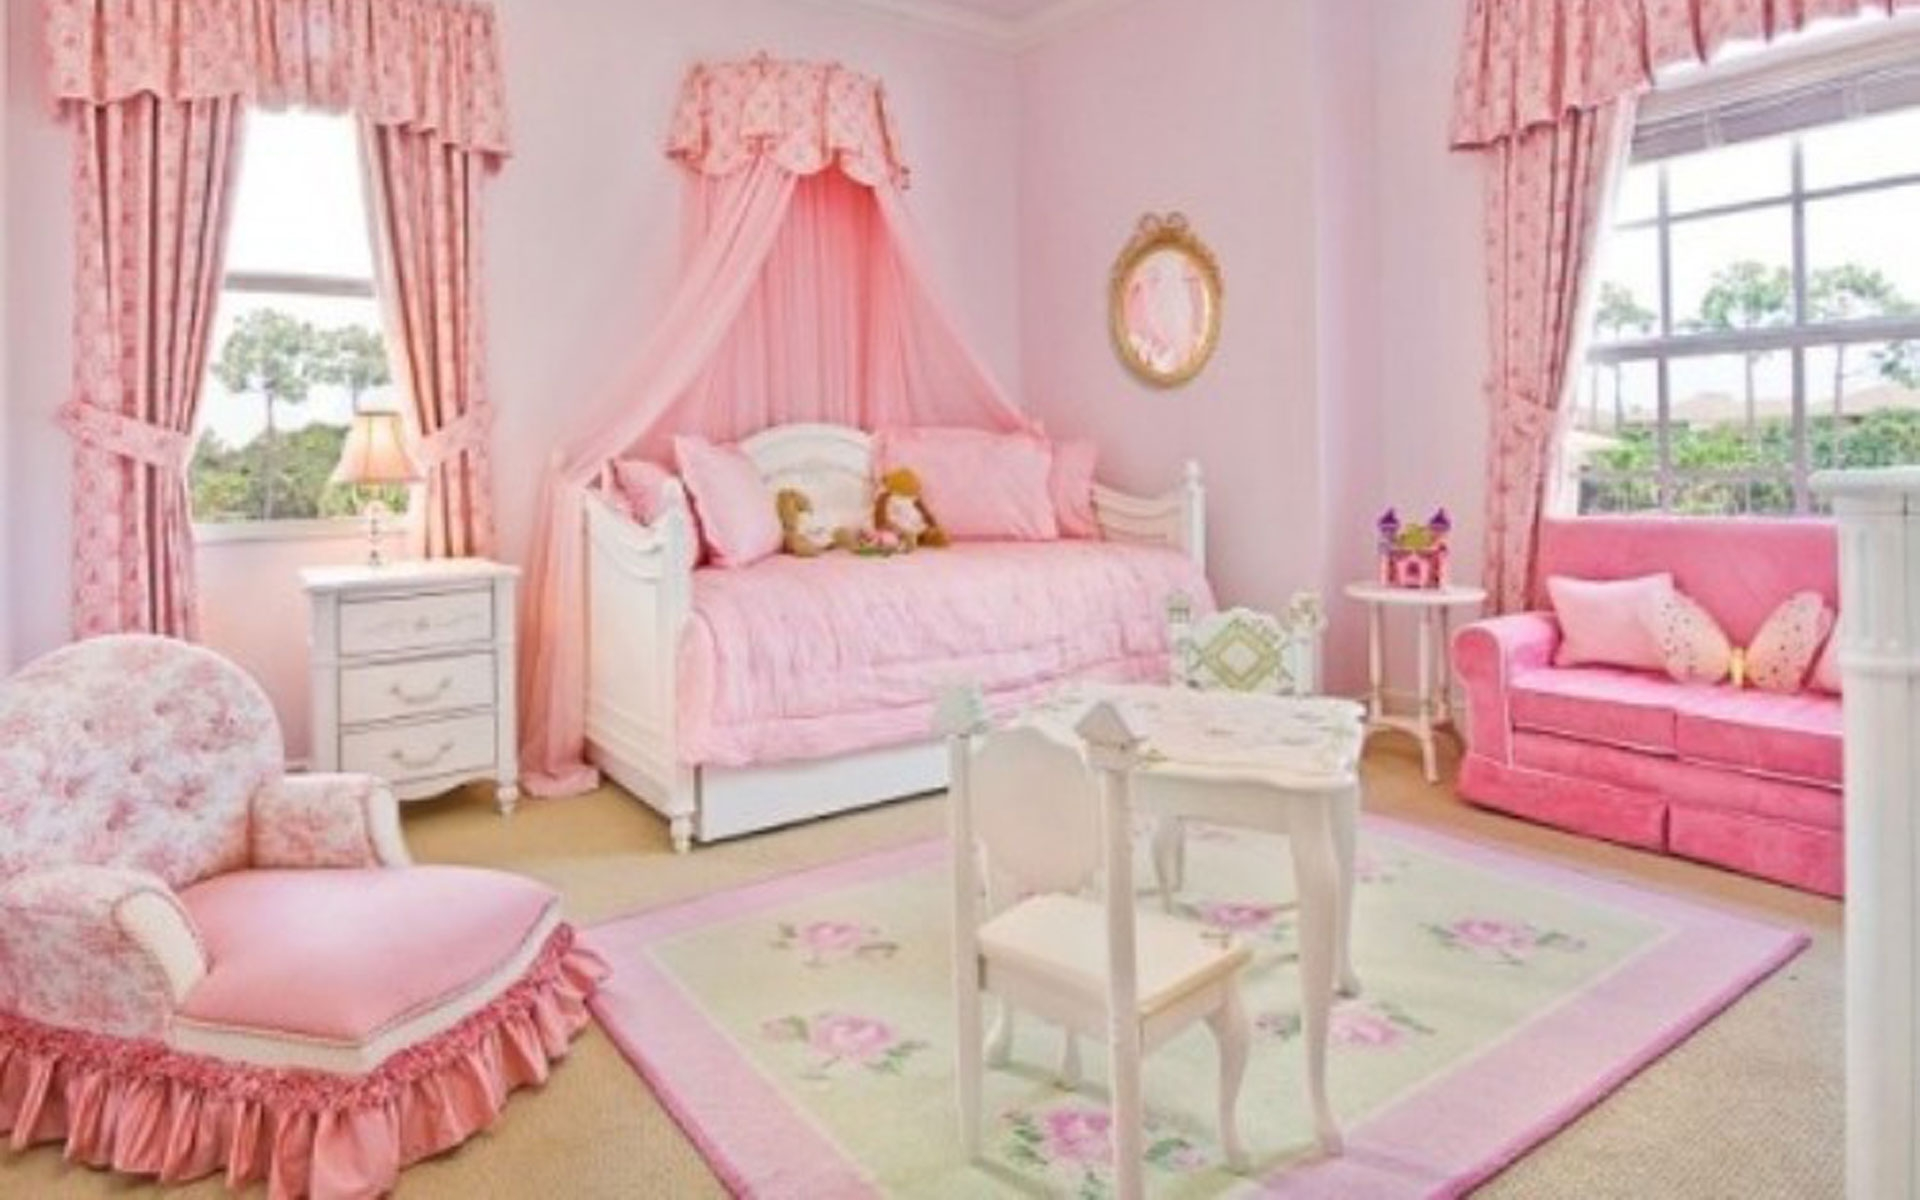 Best Decor Ideas For Girl Kids Room - Wendy Peterson on Best Rooms For Girls  id=14526